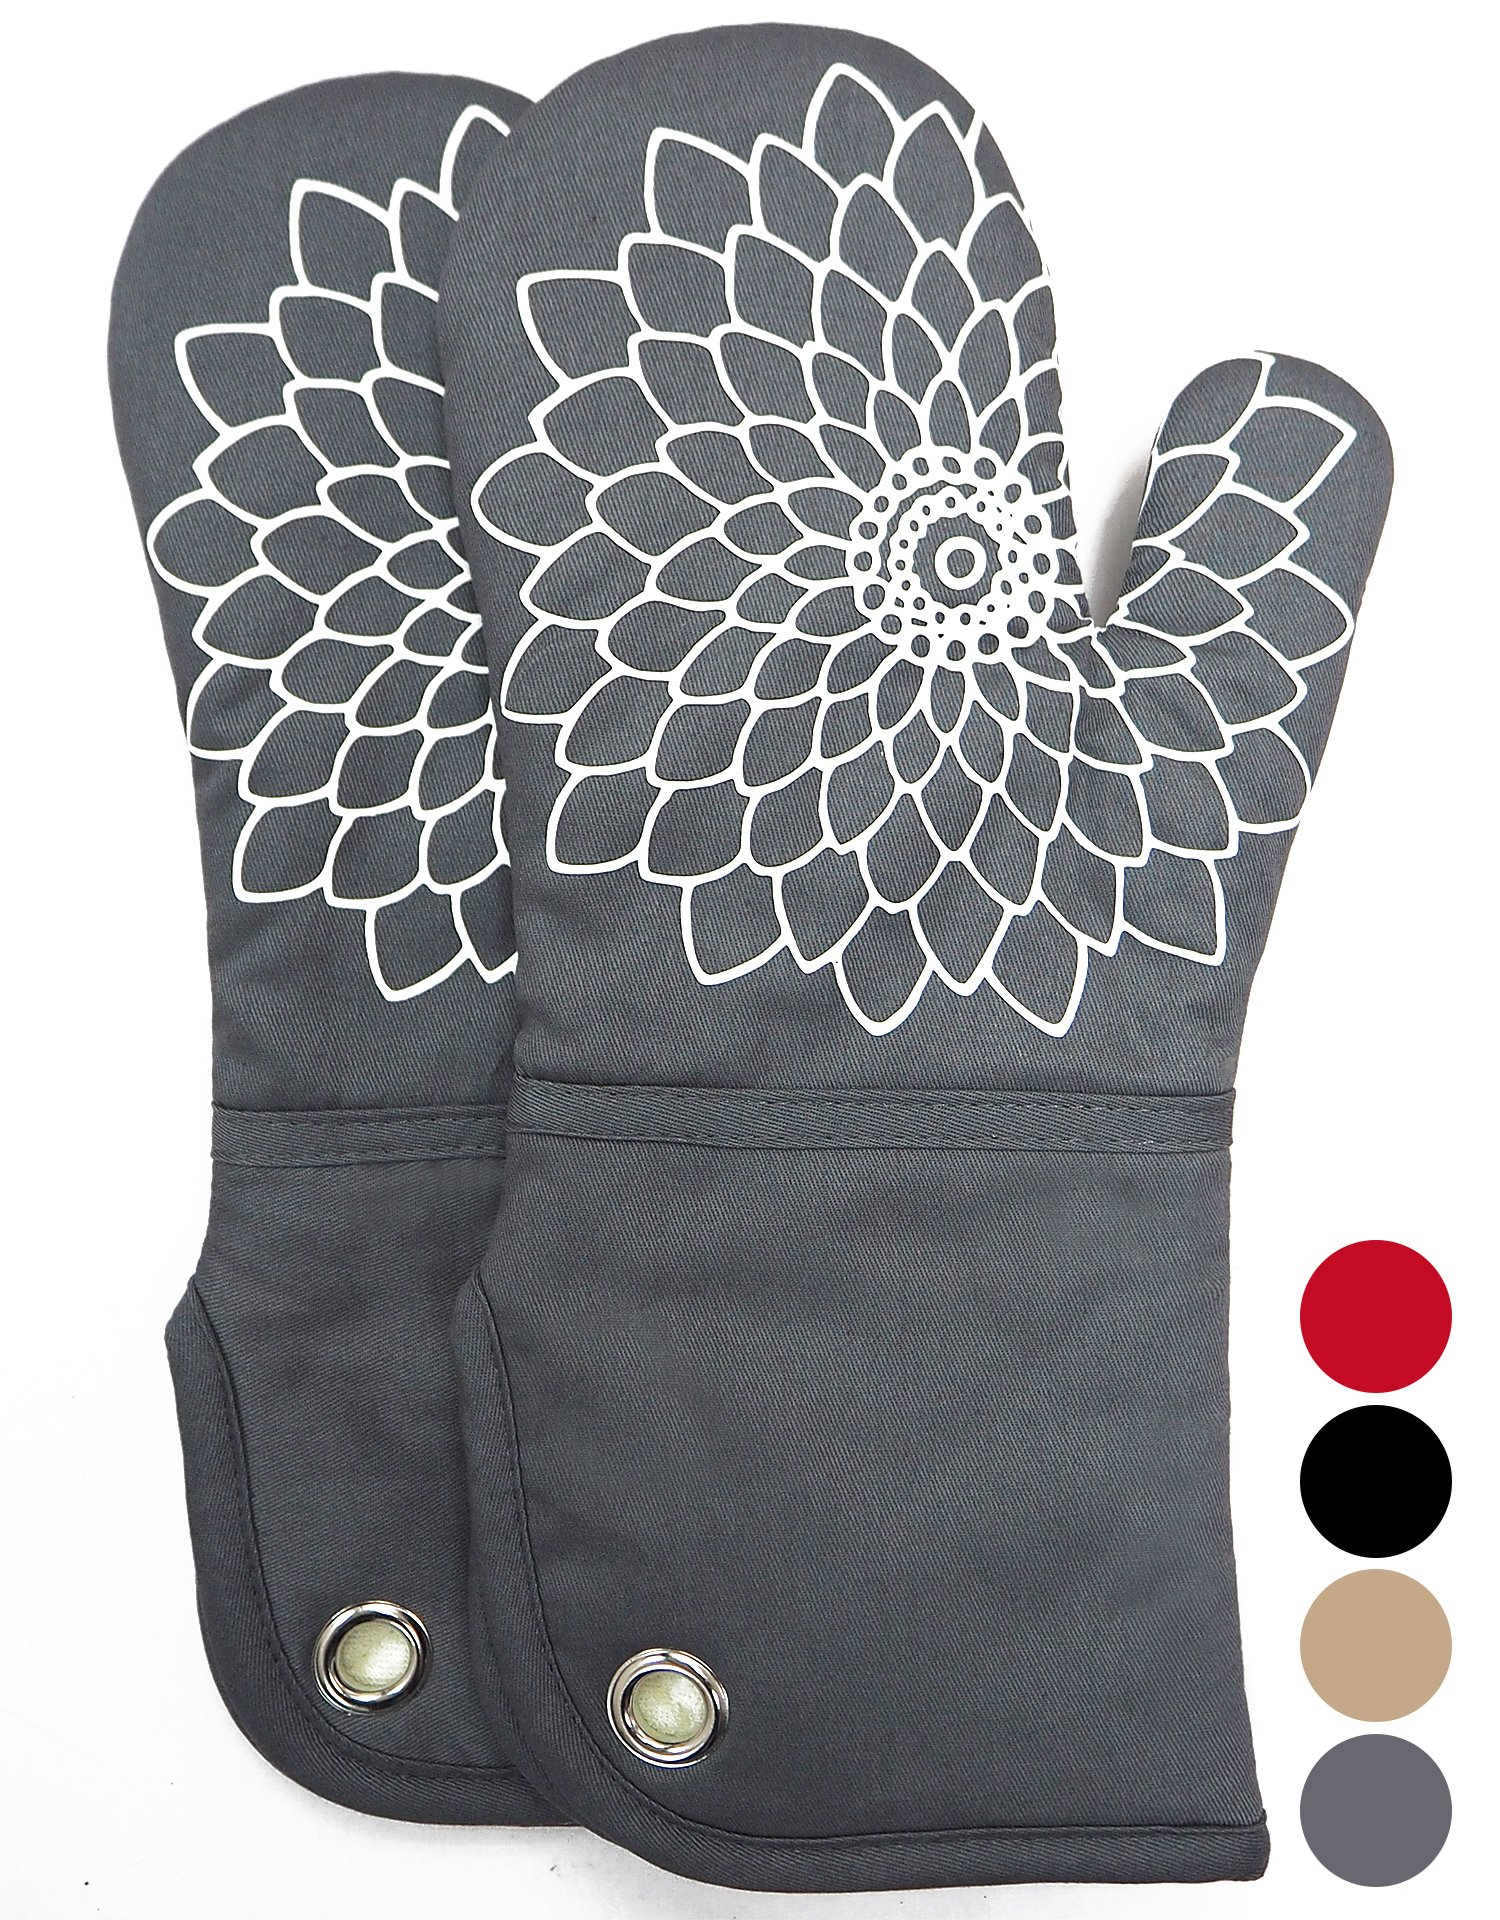 Heat Resistant Kitchen Oven Mitt With Non-Slip Silicone Printed, Set Of 2 Oven Gloves for BBQ cooking baking, Grilling, Barbecue,microwave, Machine Washable.(Gray) by DETA HOME